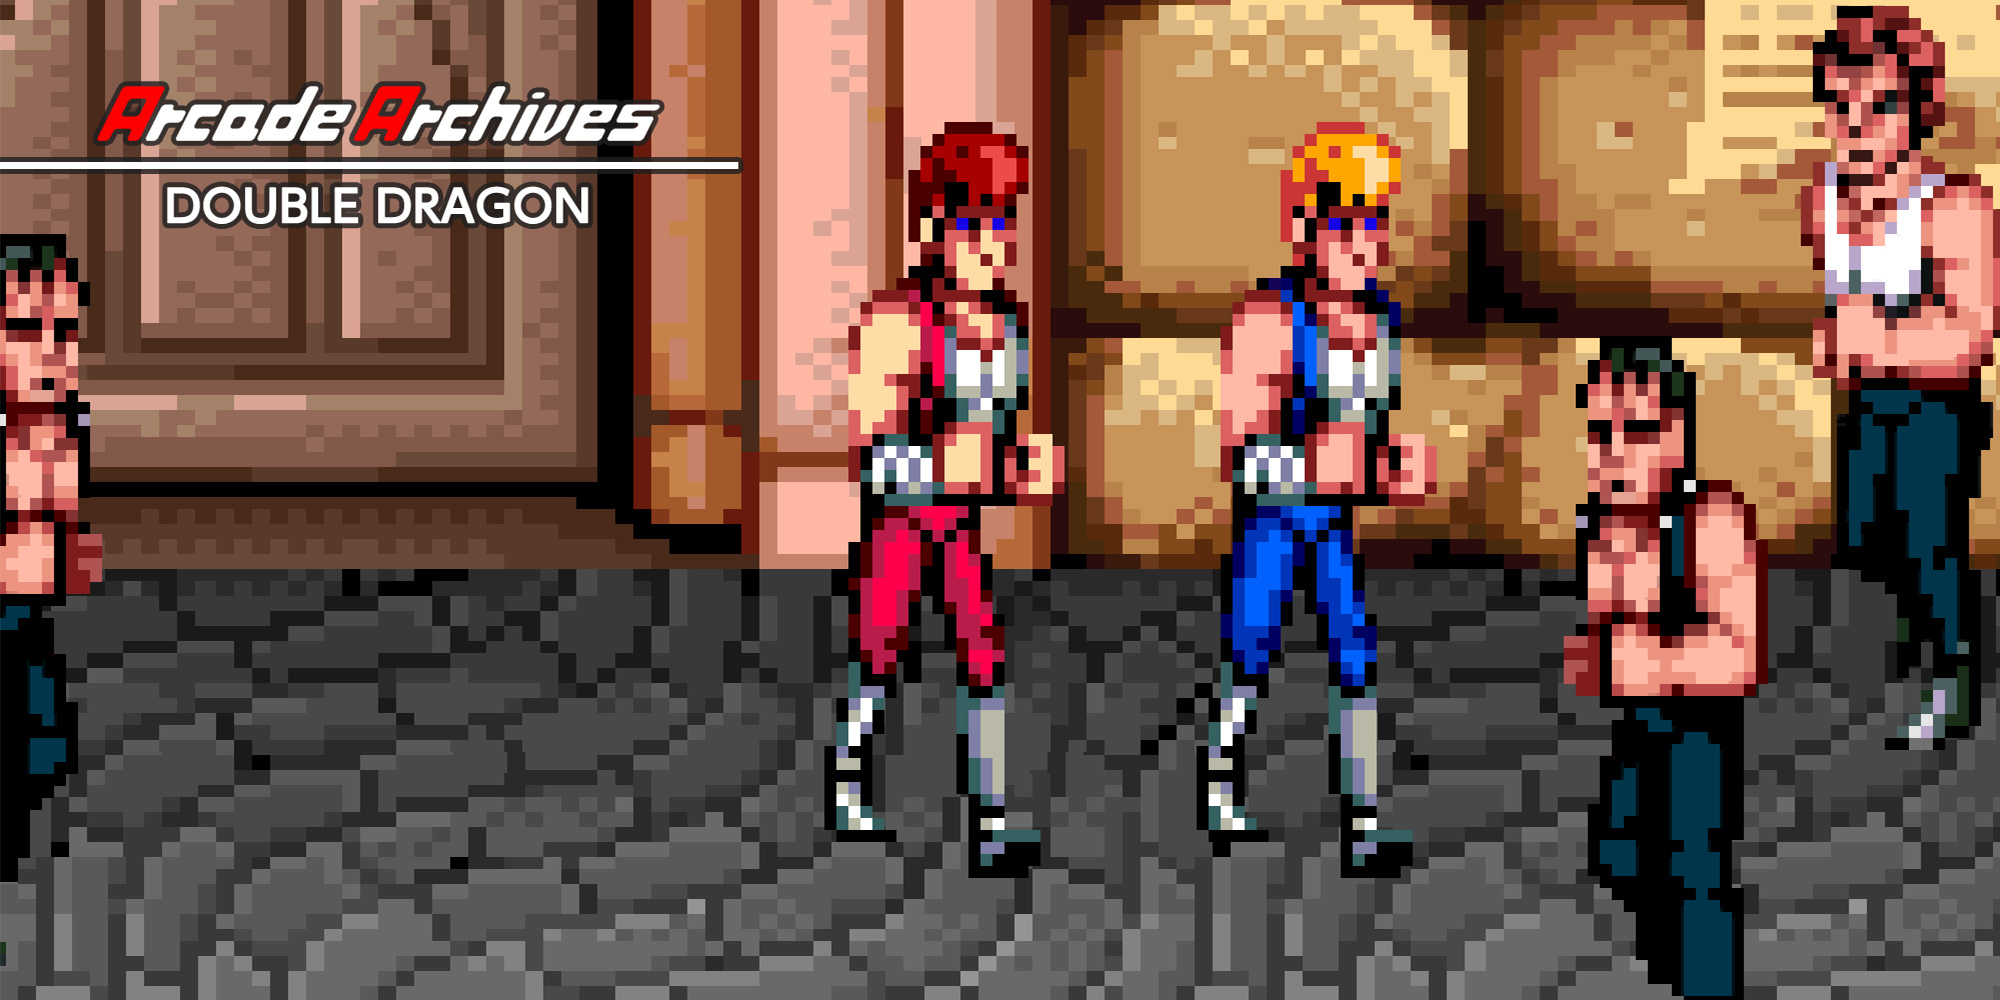 Arcade Archives Double Dragon Nintendo Switch Download Software